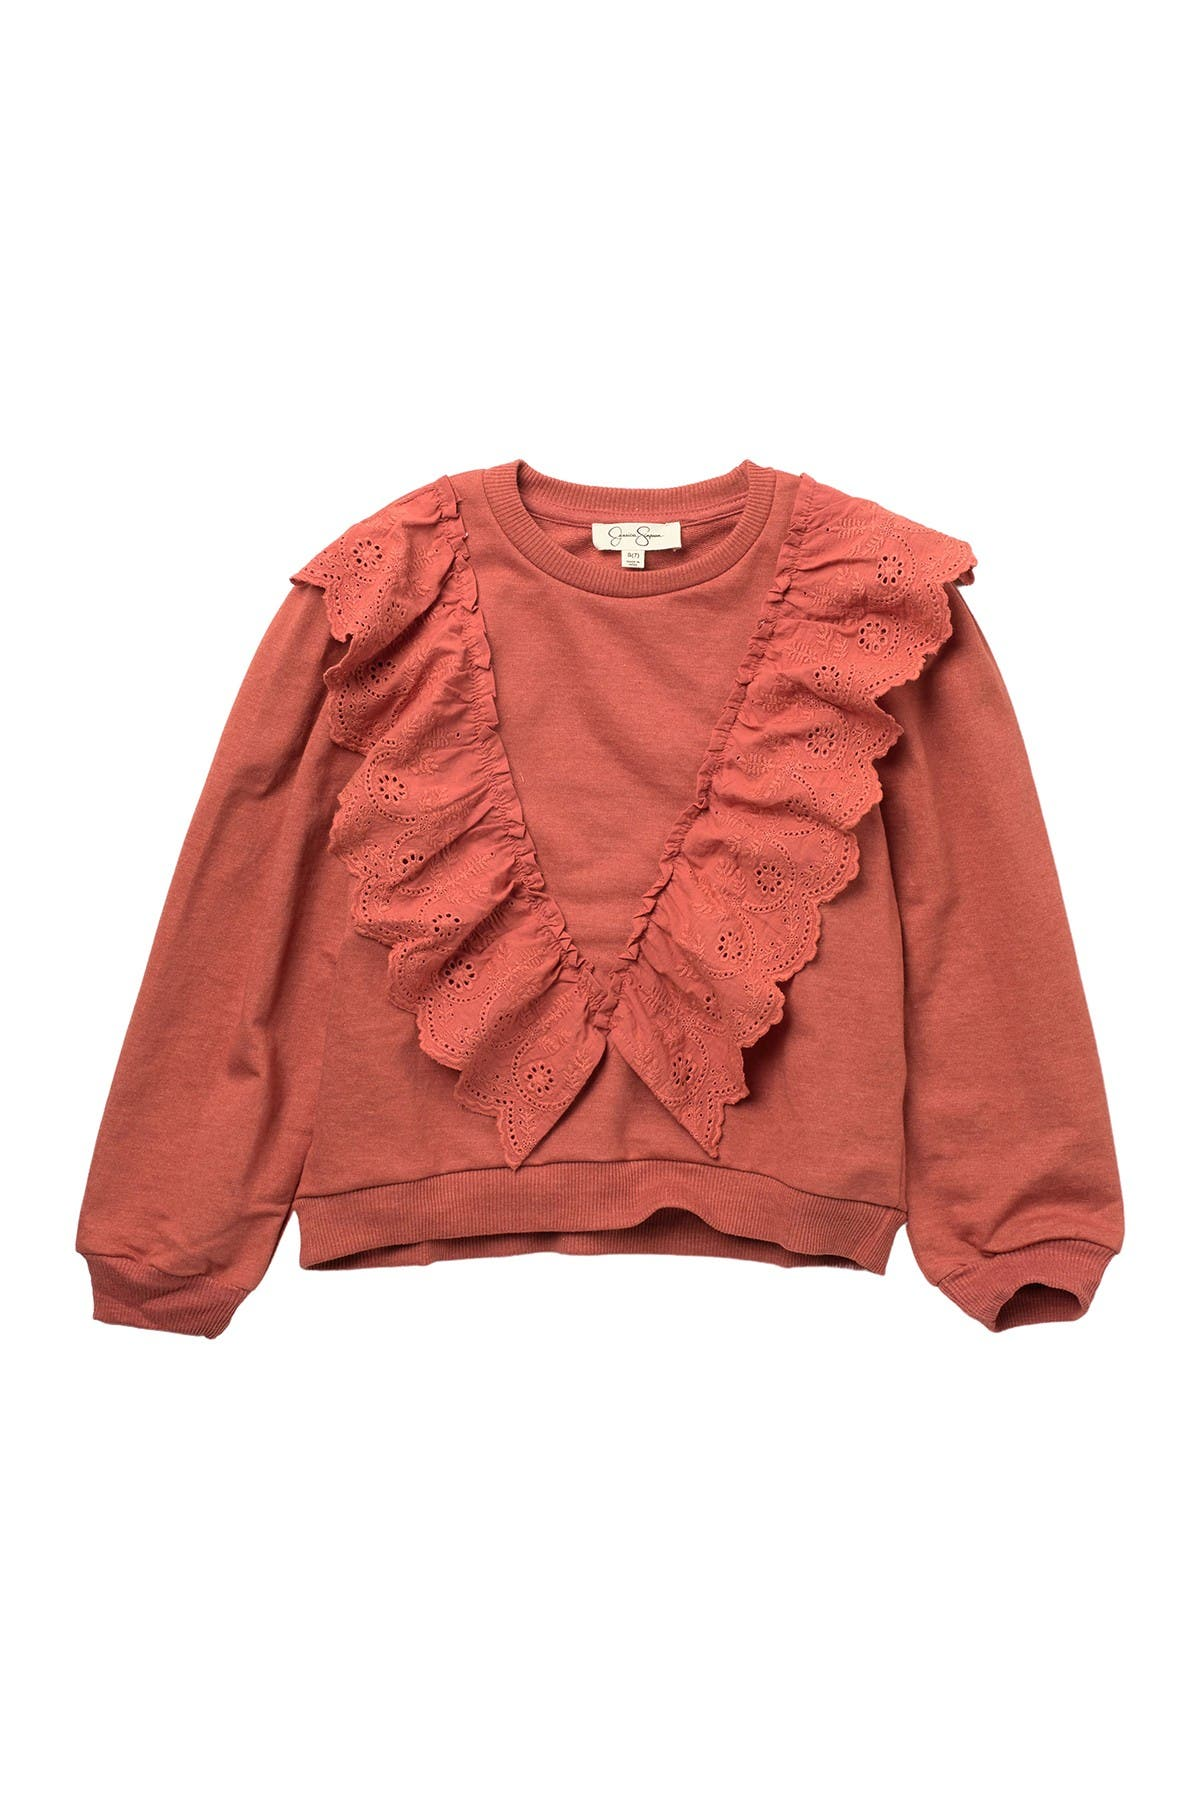 Image of Jessica Simpson French Terry Scalloped ruffle Pullover Sweater